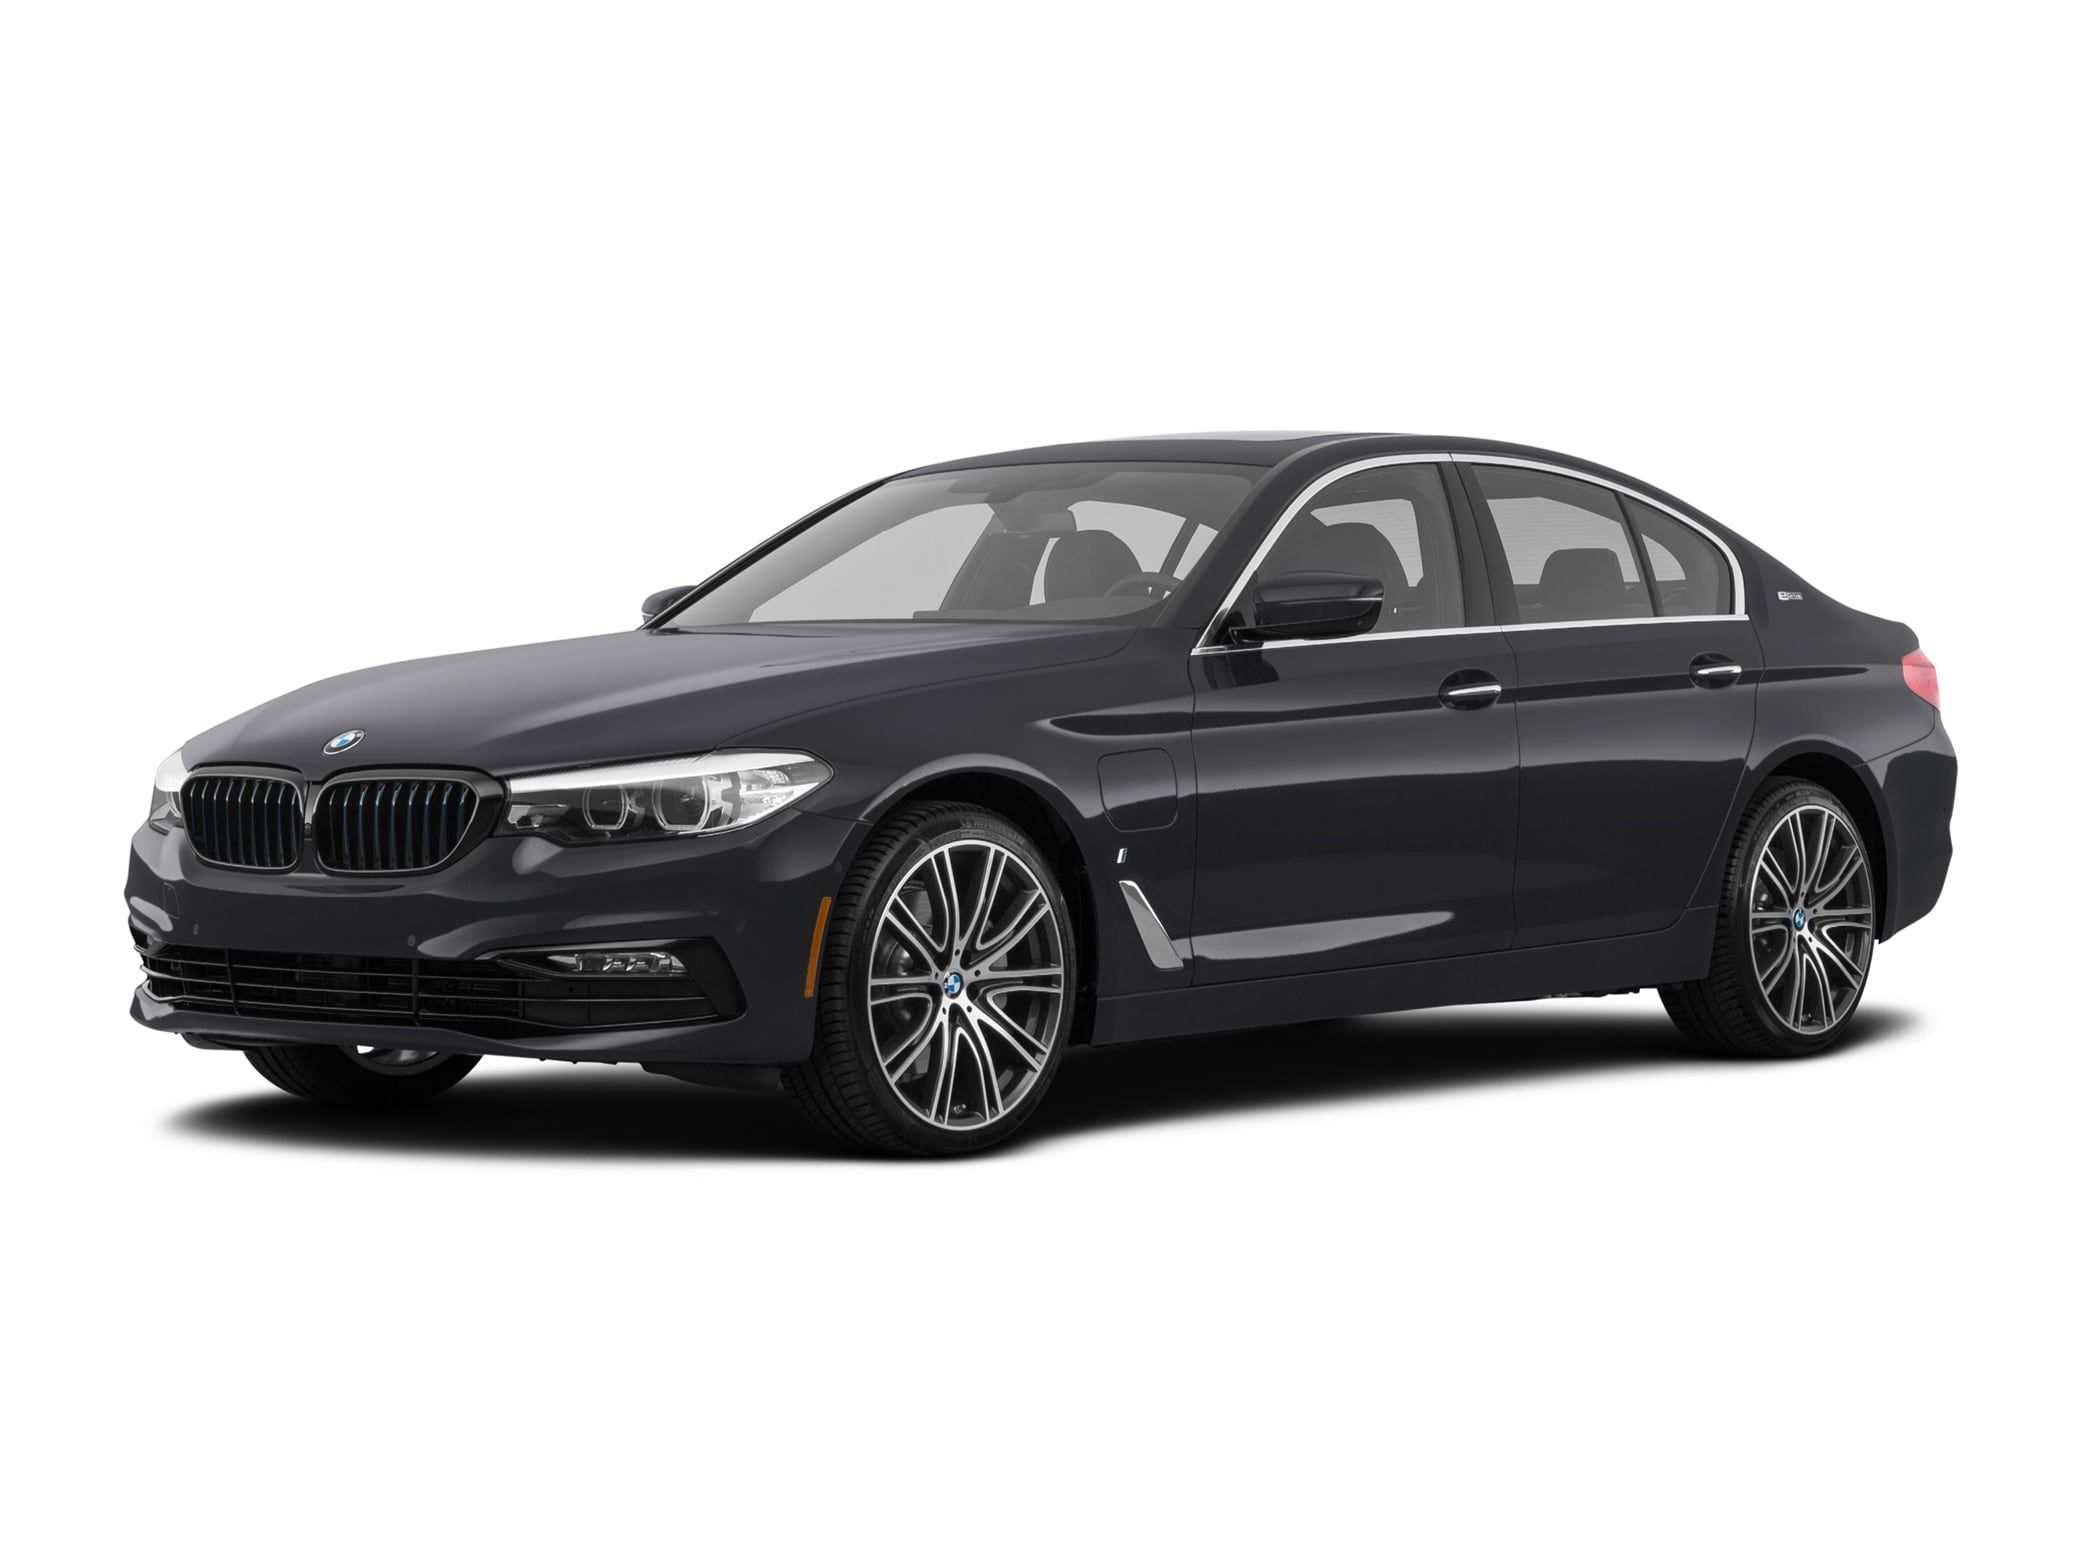 64 All New 2019 Bmw Graphite Edition Picture by 2019 Bmw Graphite Edition